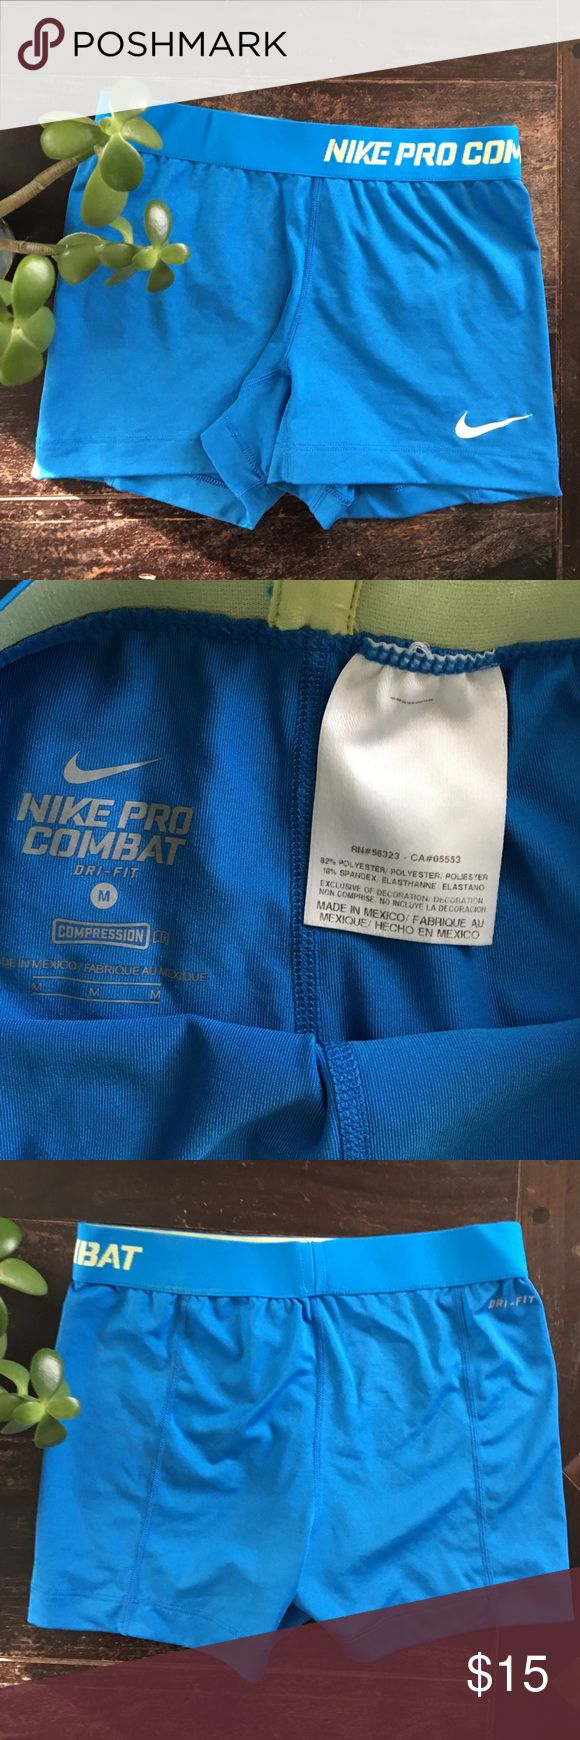 Nike pro combat compression shorts Medium Dri fit shorts. Great for working out! Nike Shorts